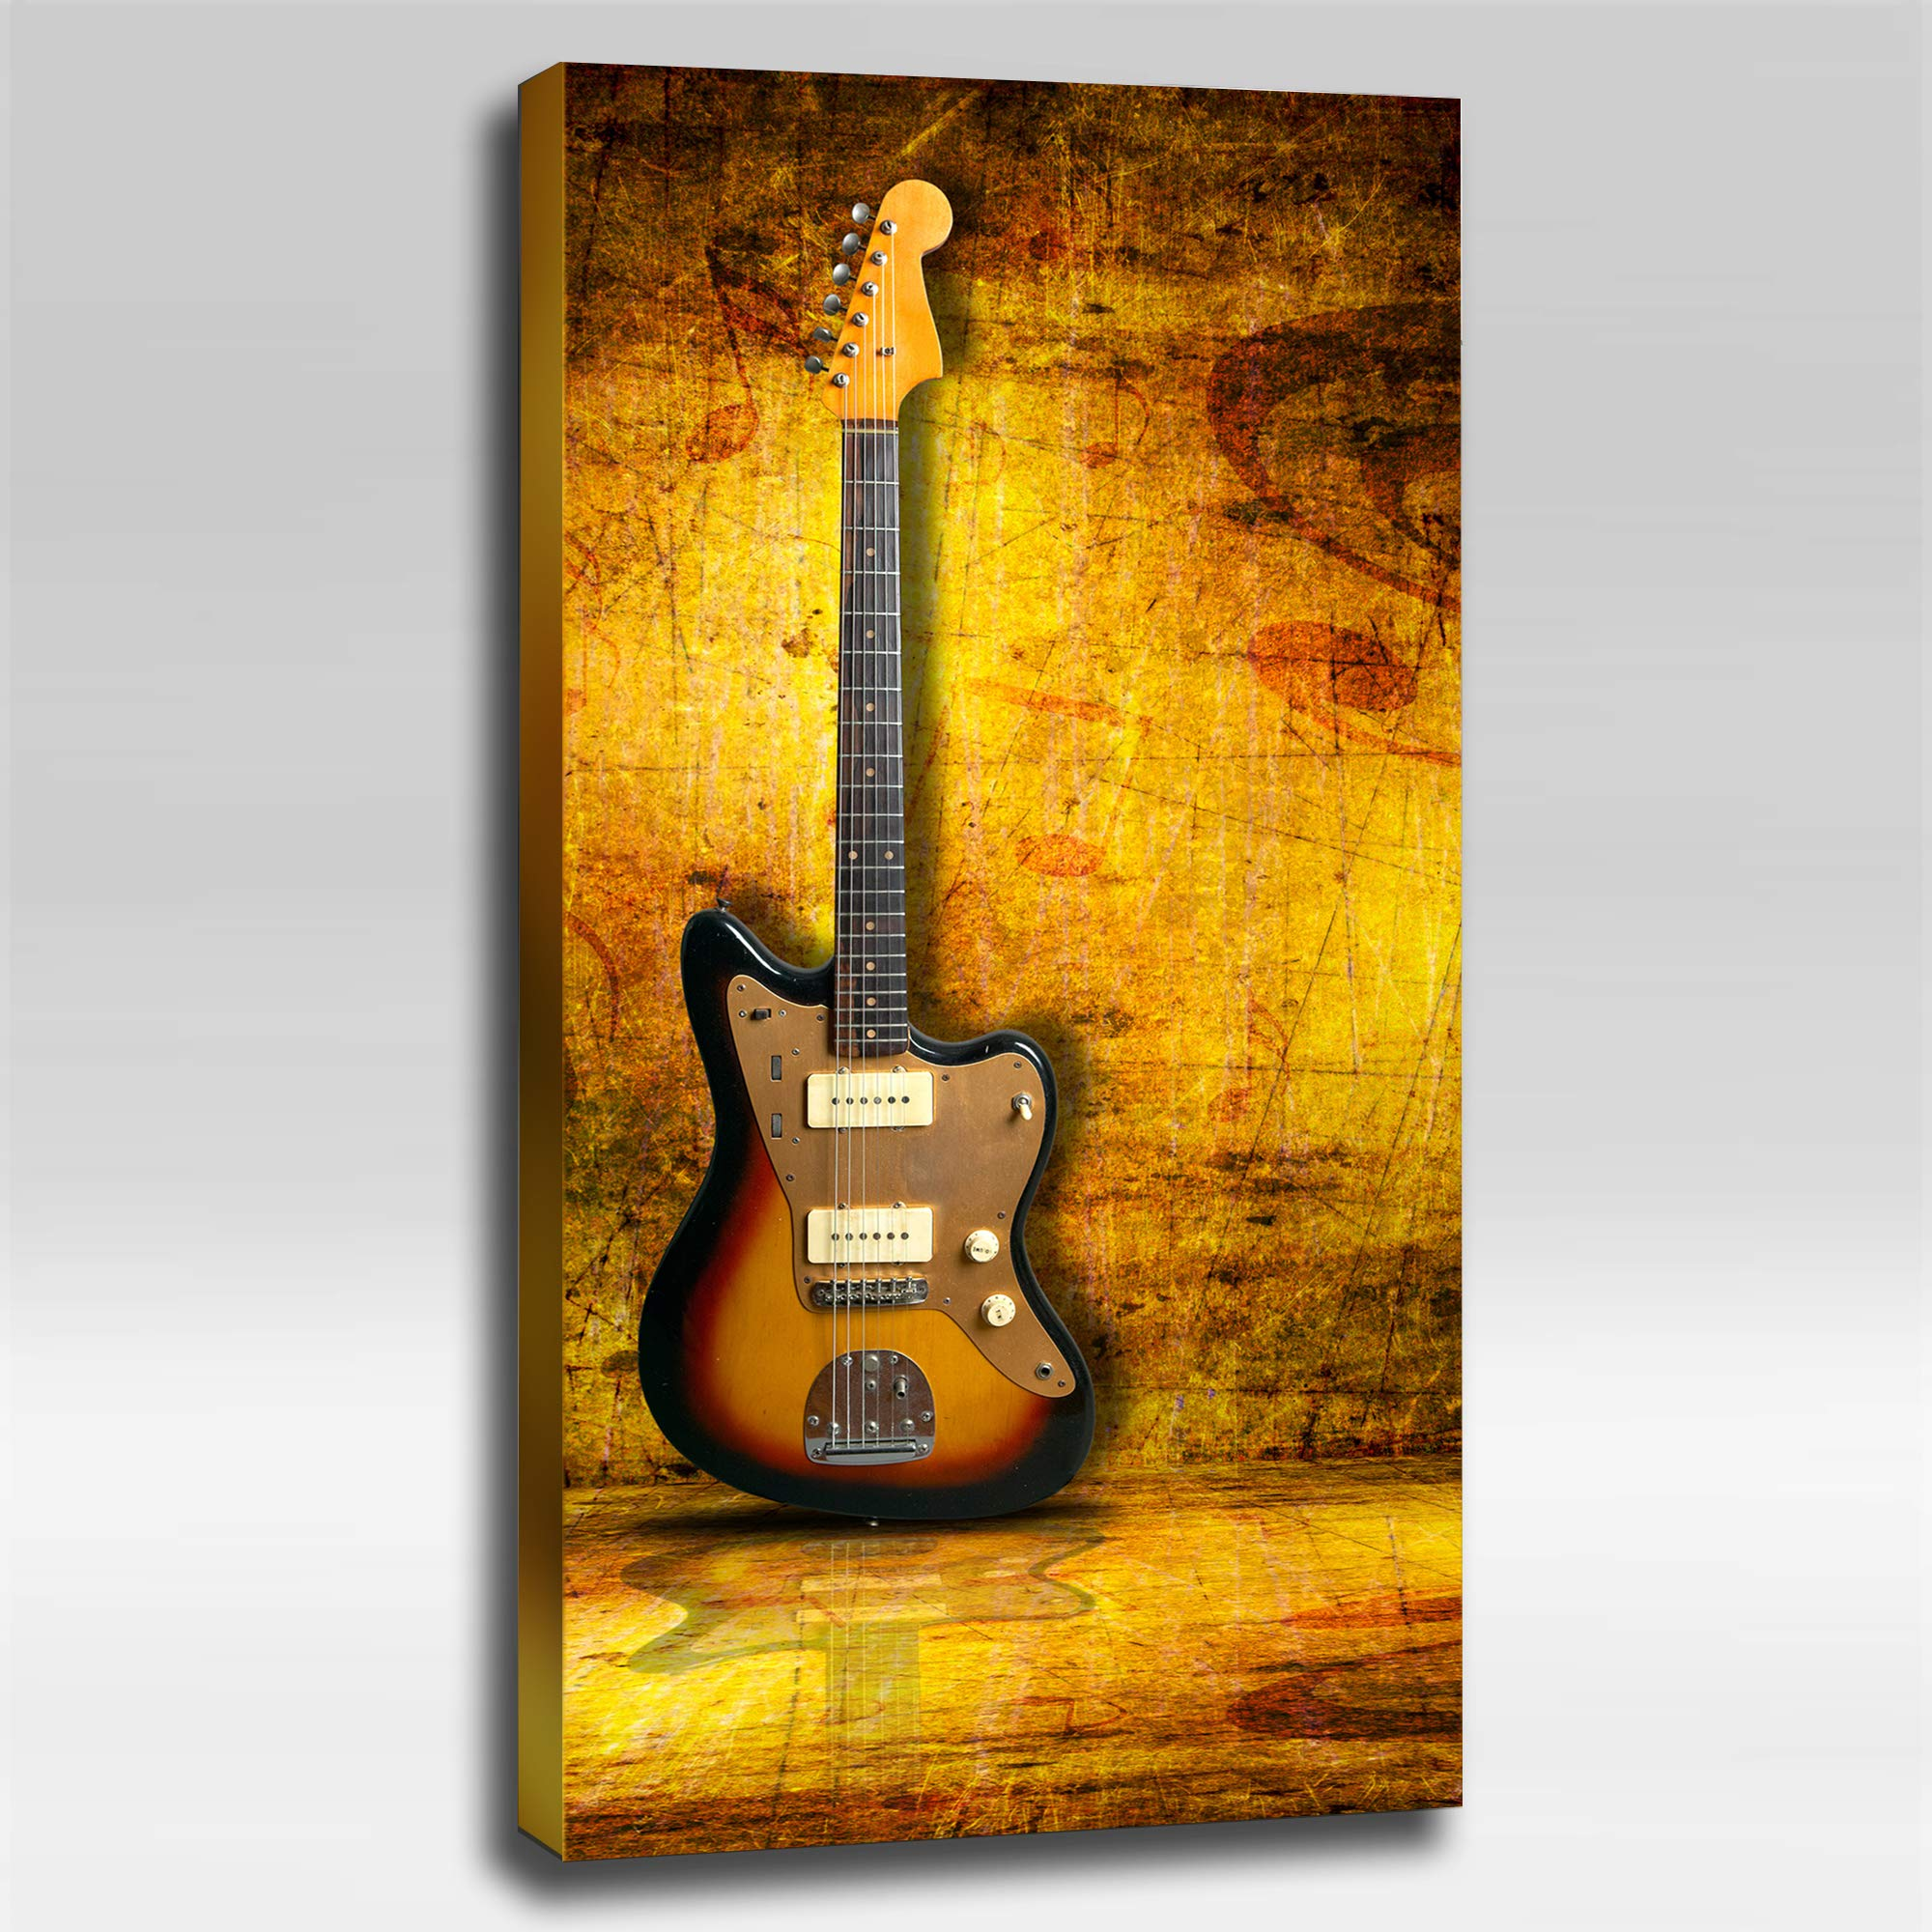 Grunge Gold Guitar - Ready Made 4'x2'x2'' Acoustic Art Panel : Includes all Mounting Hardware.